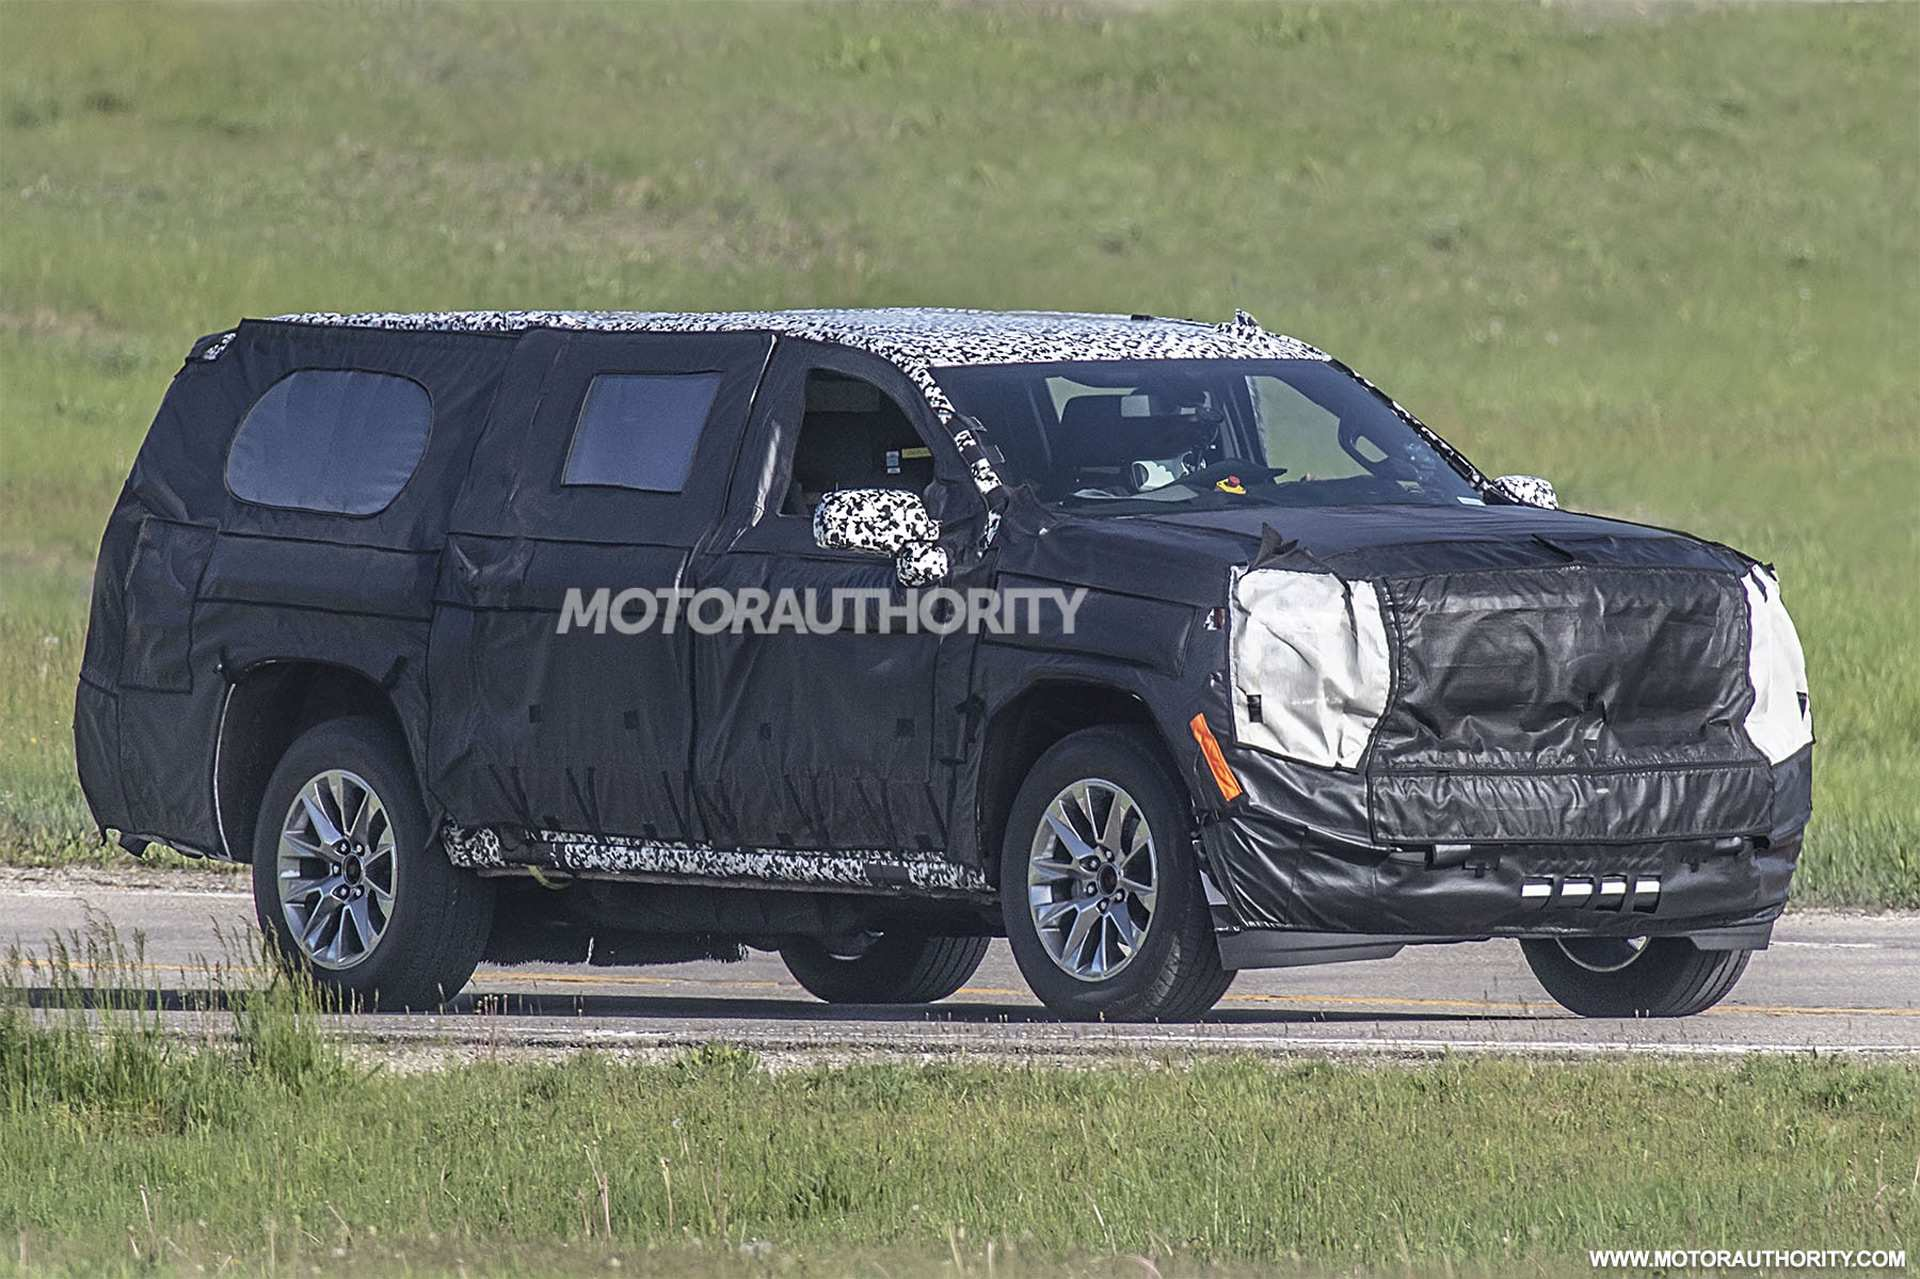 28 All New Chevrolet Suburban 2020 Spy Shots Release Date